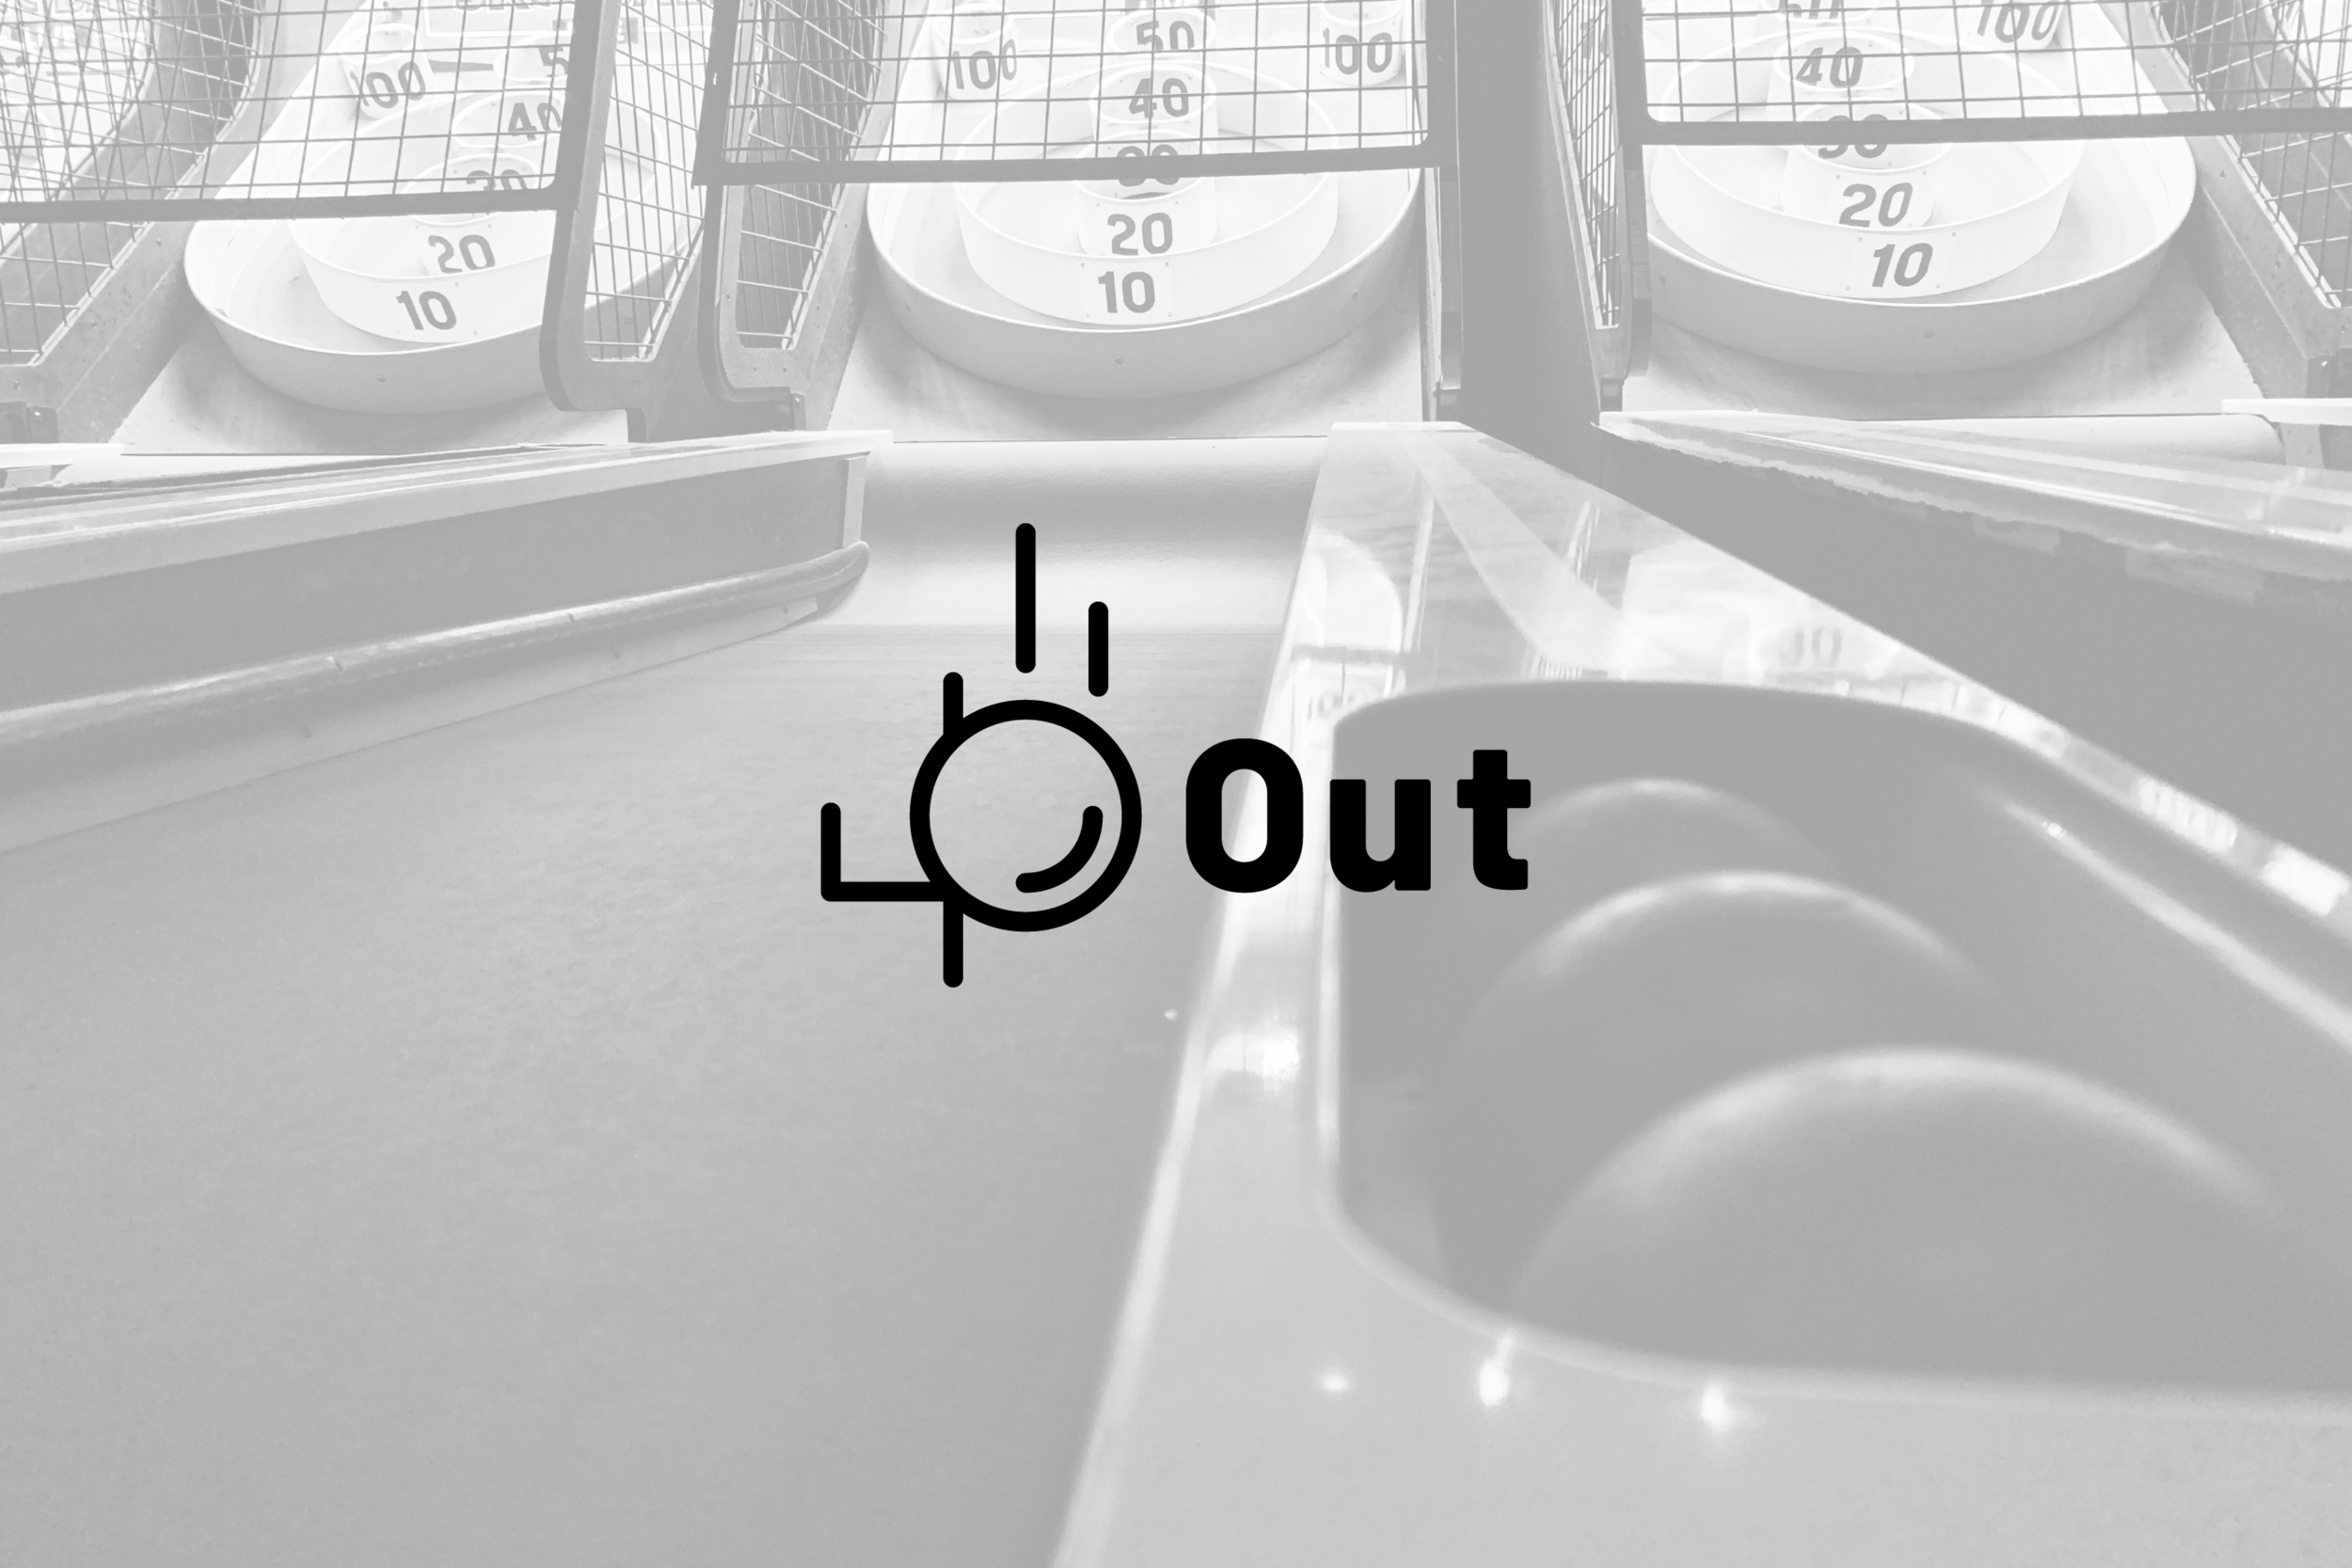 Logo design for 40out, competitive Skee-Ball podcast in Huntsville, Alabama.